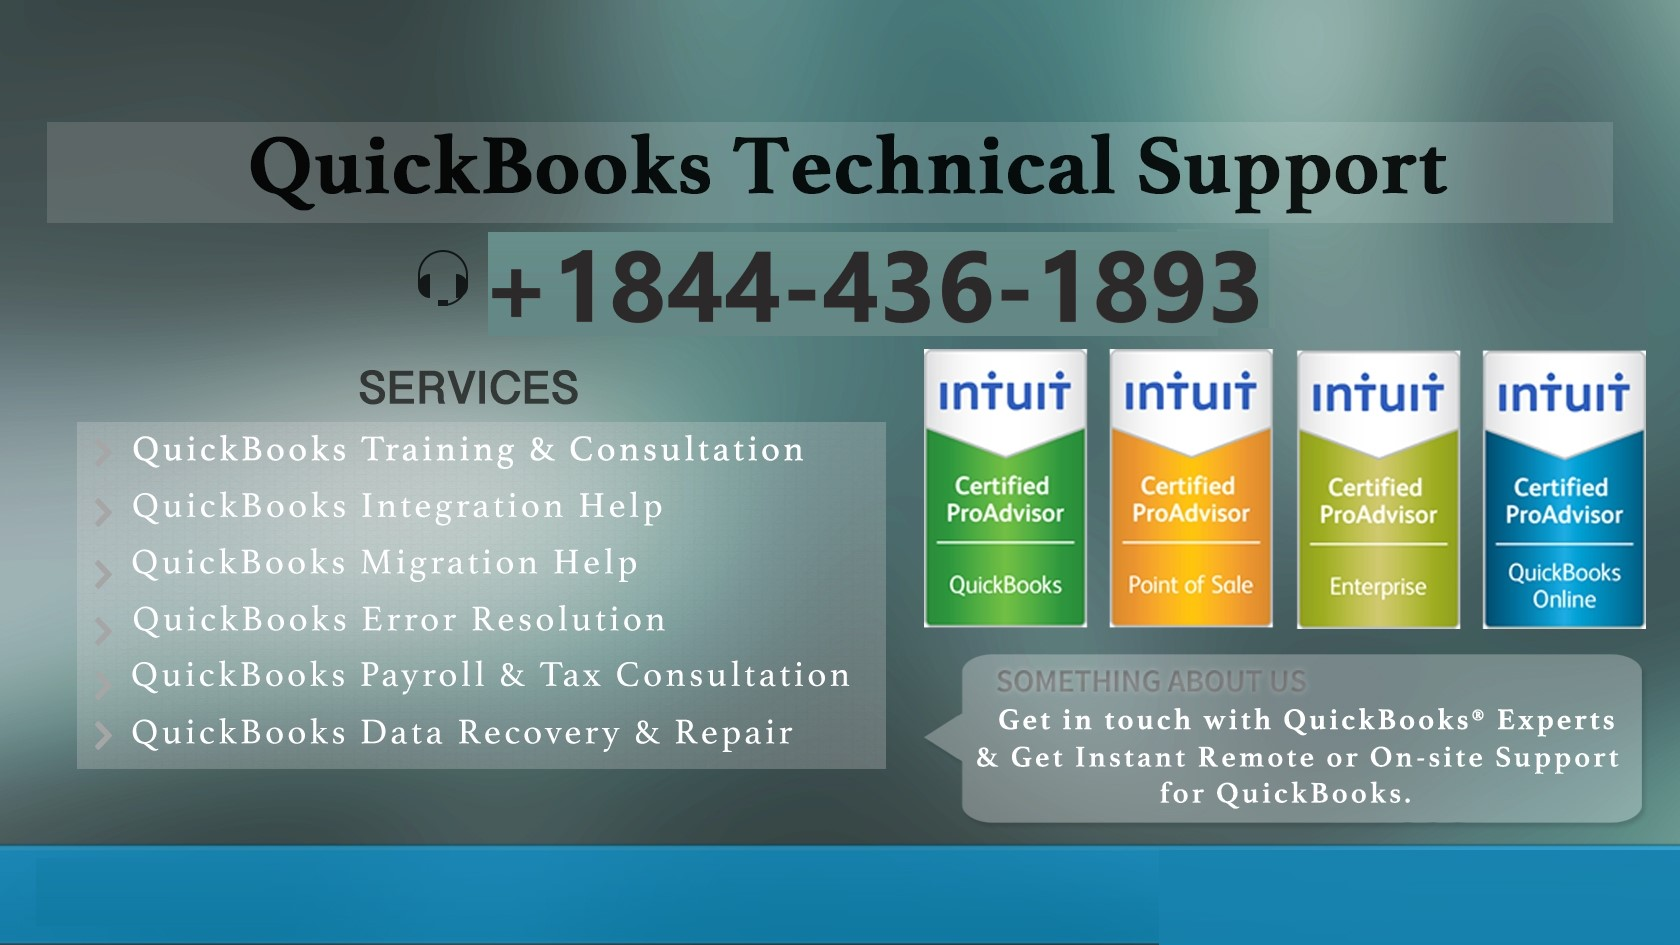 quickbooks-tech-support